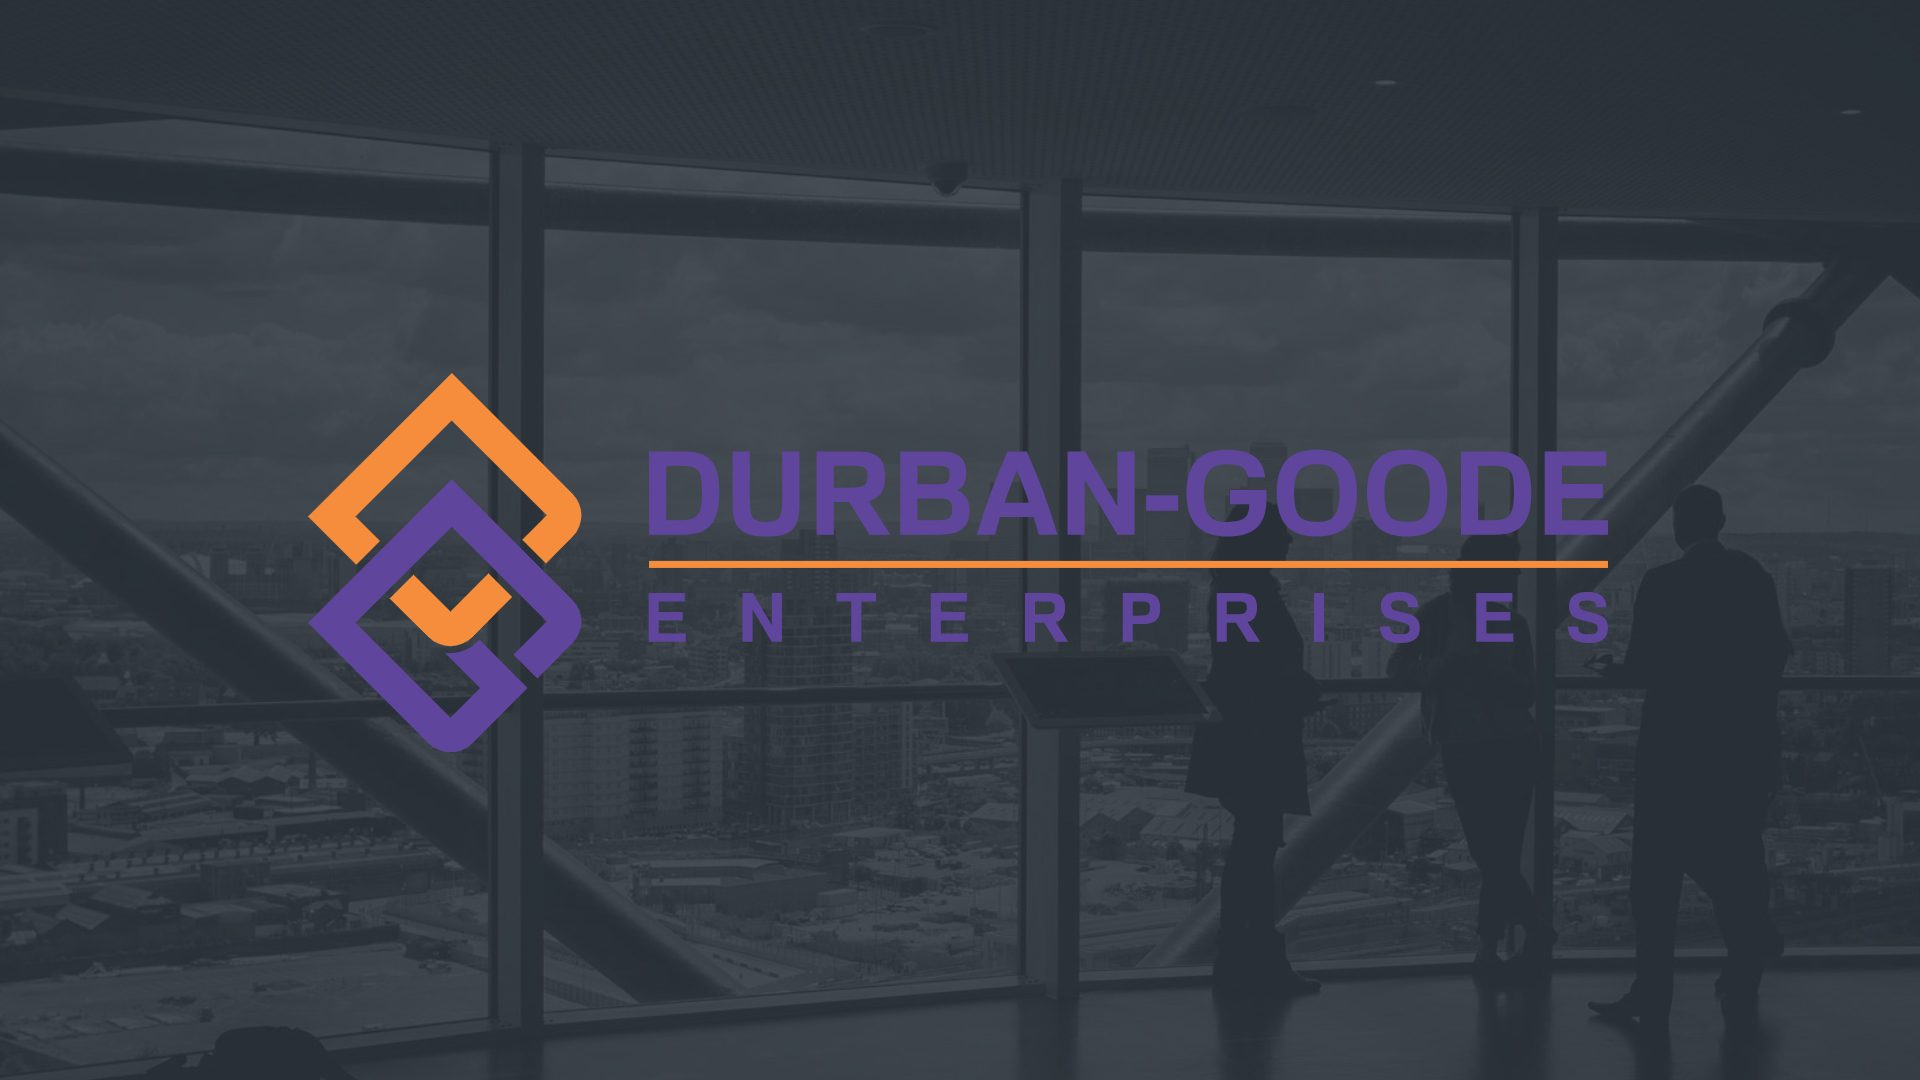 Durban-Goode Enterprises - 2021 Logo (3)